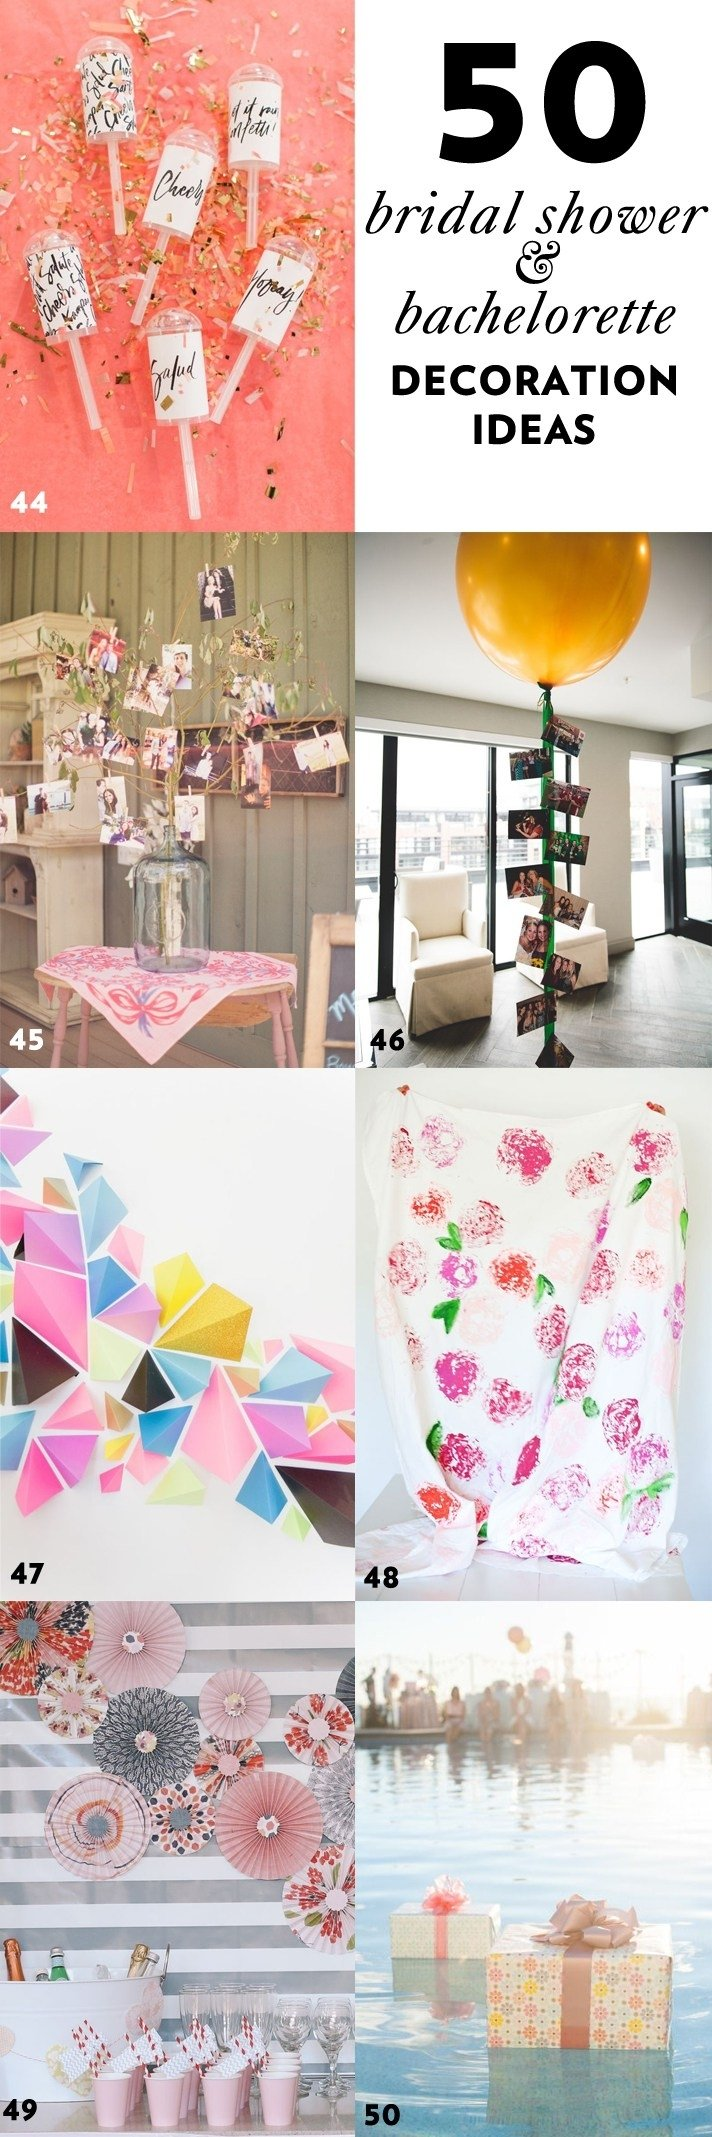 10 Most Recommended Bridal Shower Decoration Ideas Diy 50 simple and stylish diy bridal shower bachelorette decoration